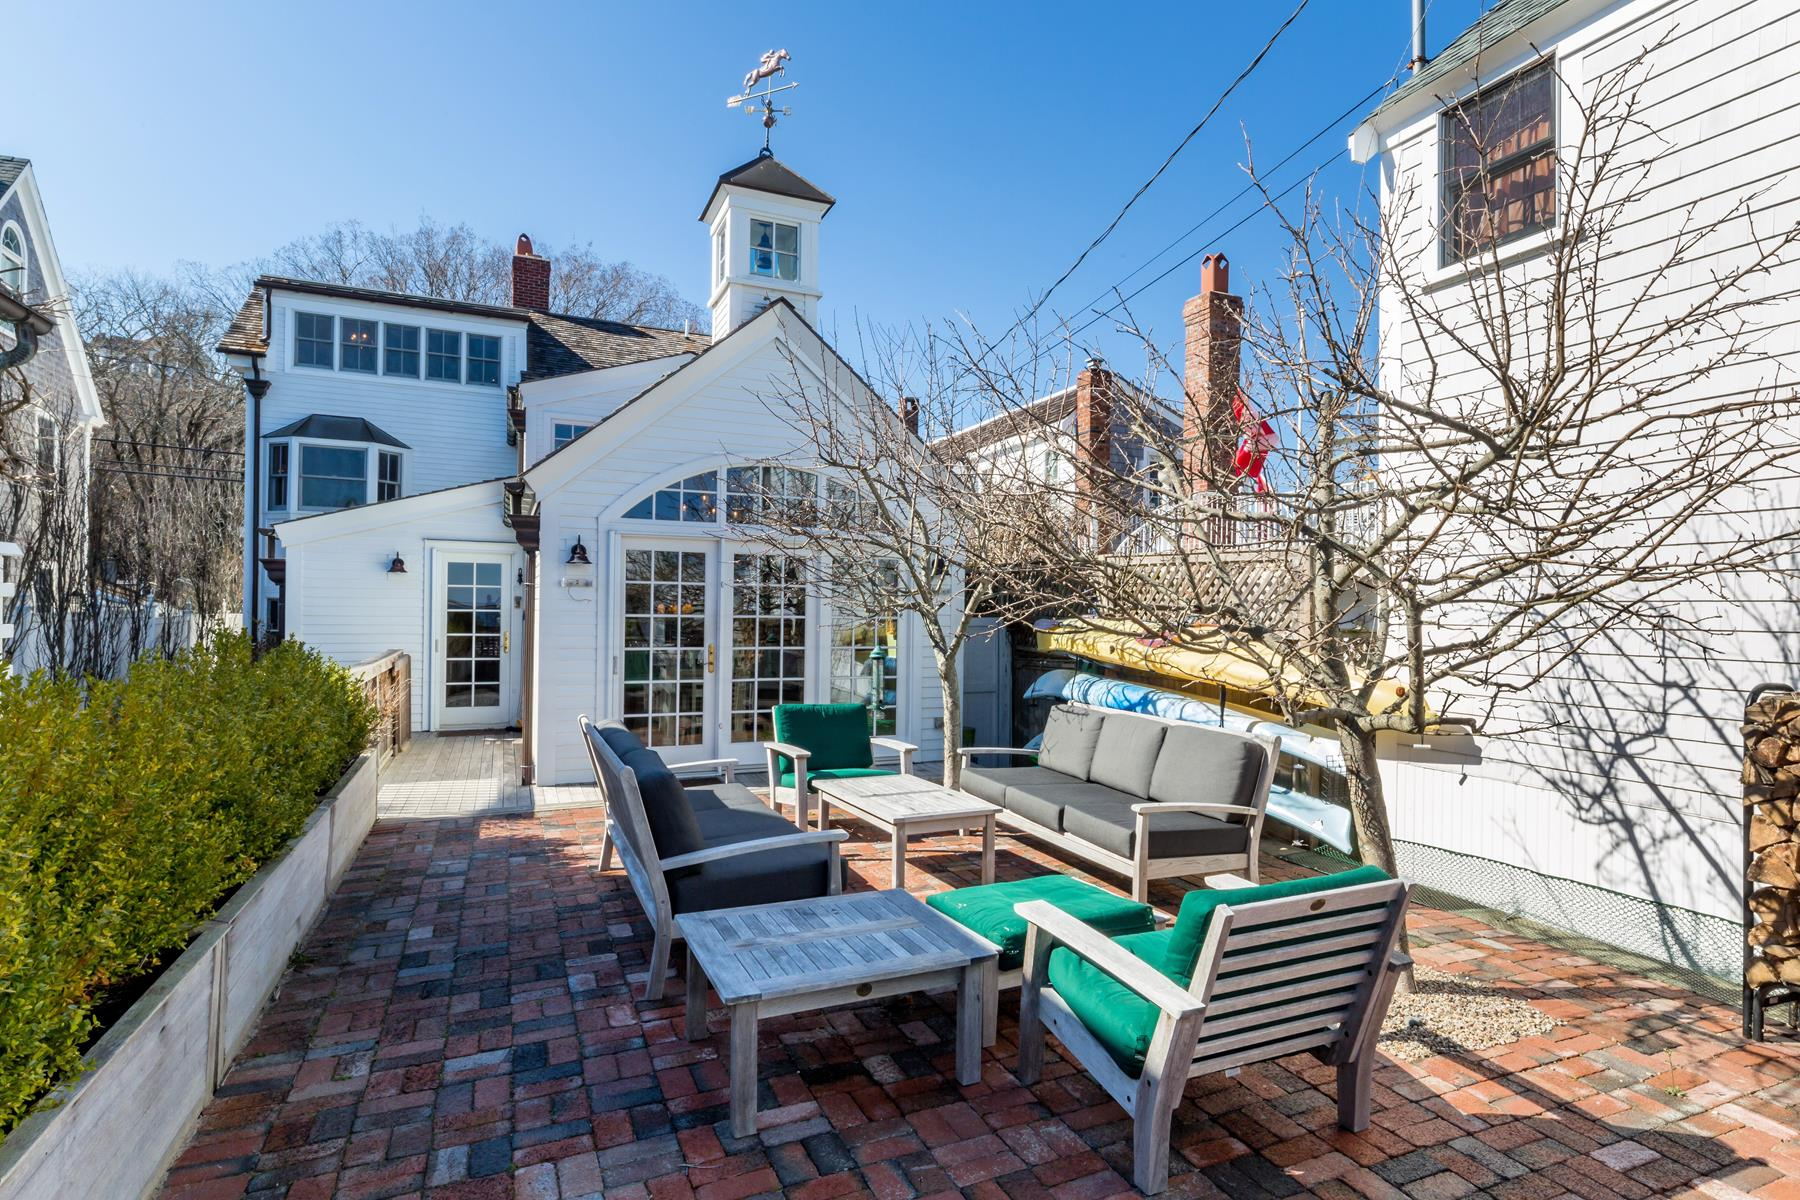 Condominium for Sale at West End Waterfront 47 Commercial Street, Unit A Provincetown, Massachusetts 02657 United States